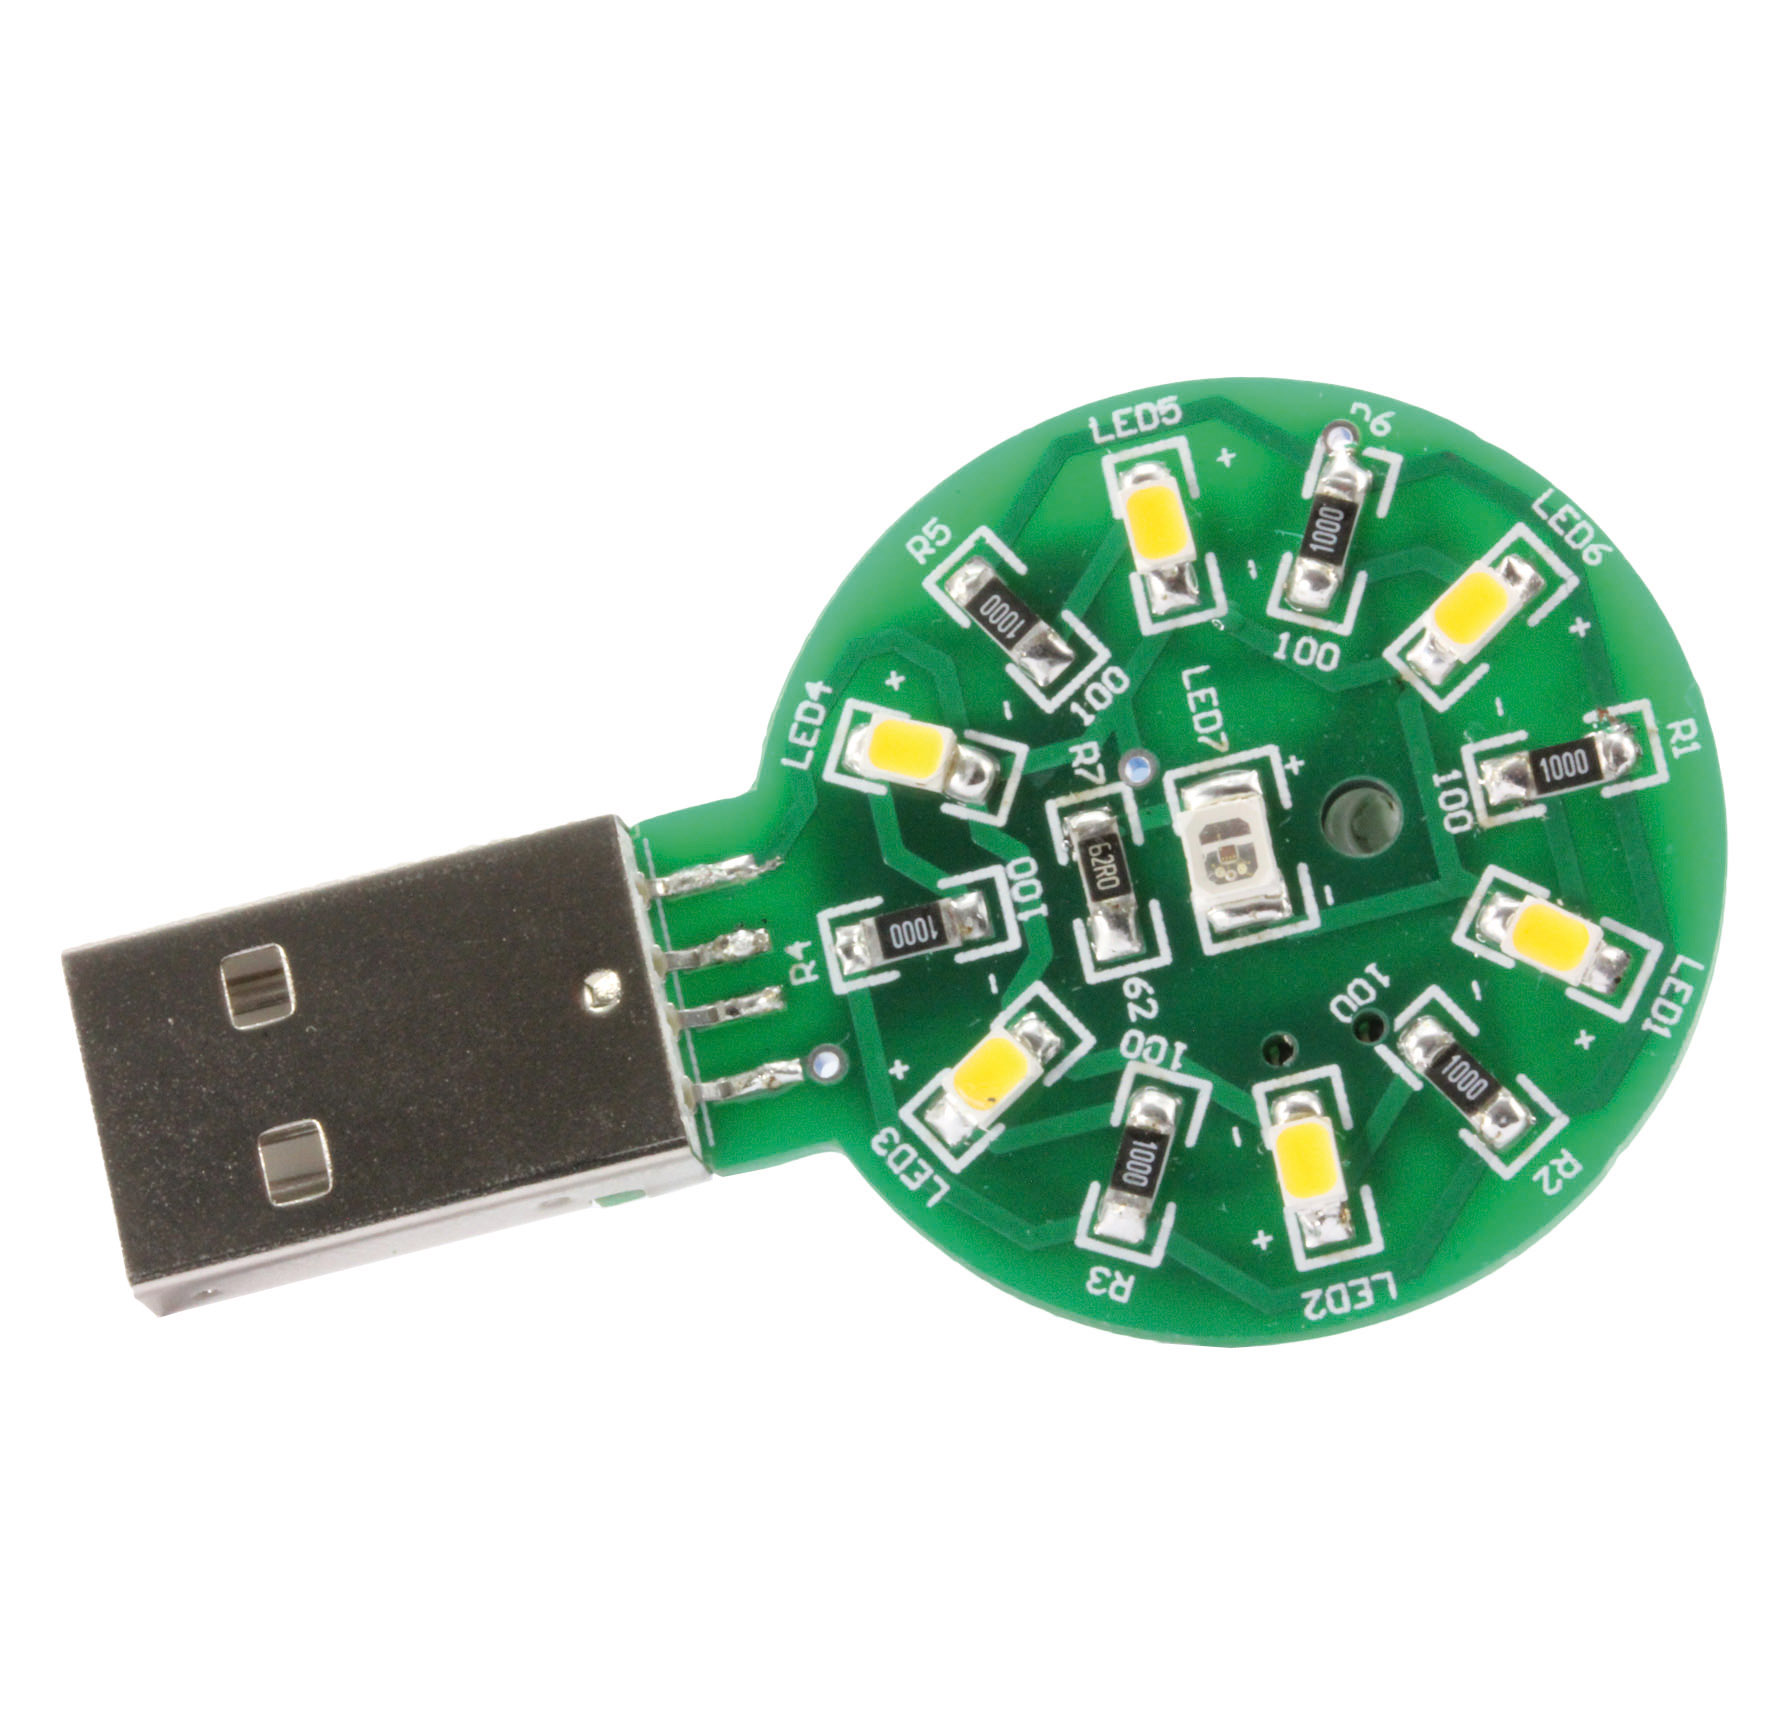 SMD parts kit torch for USB port